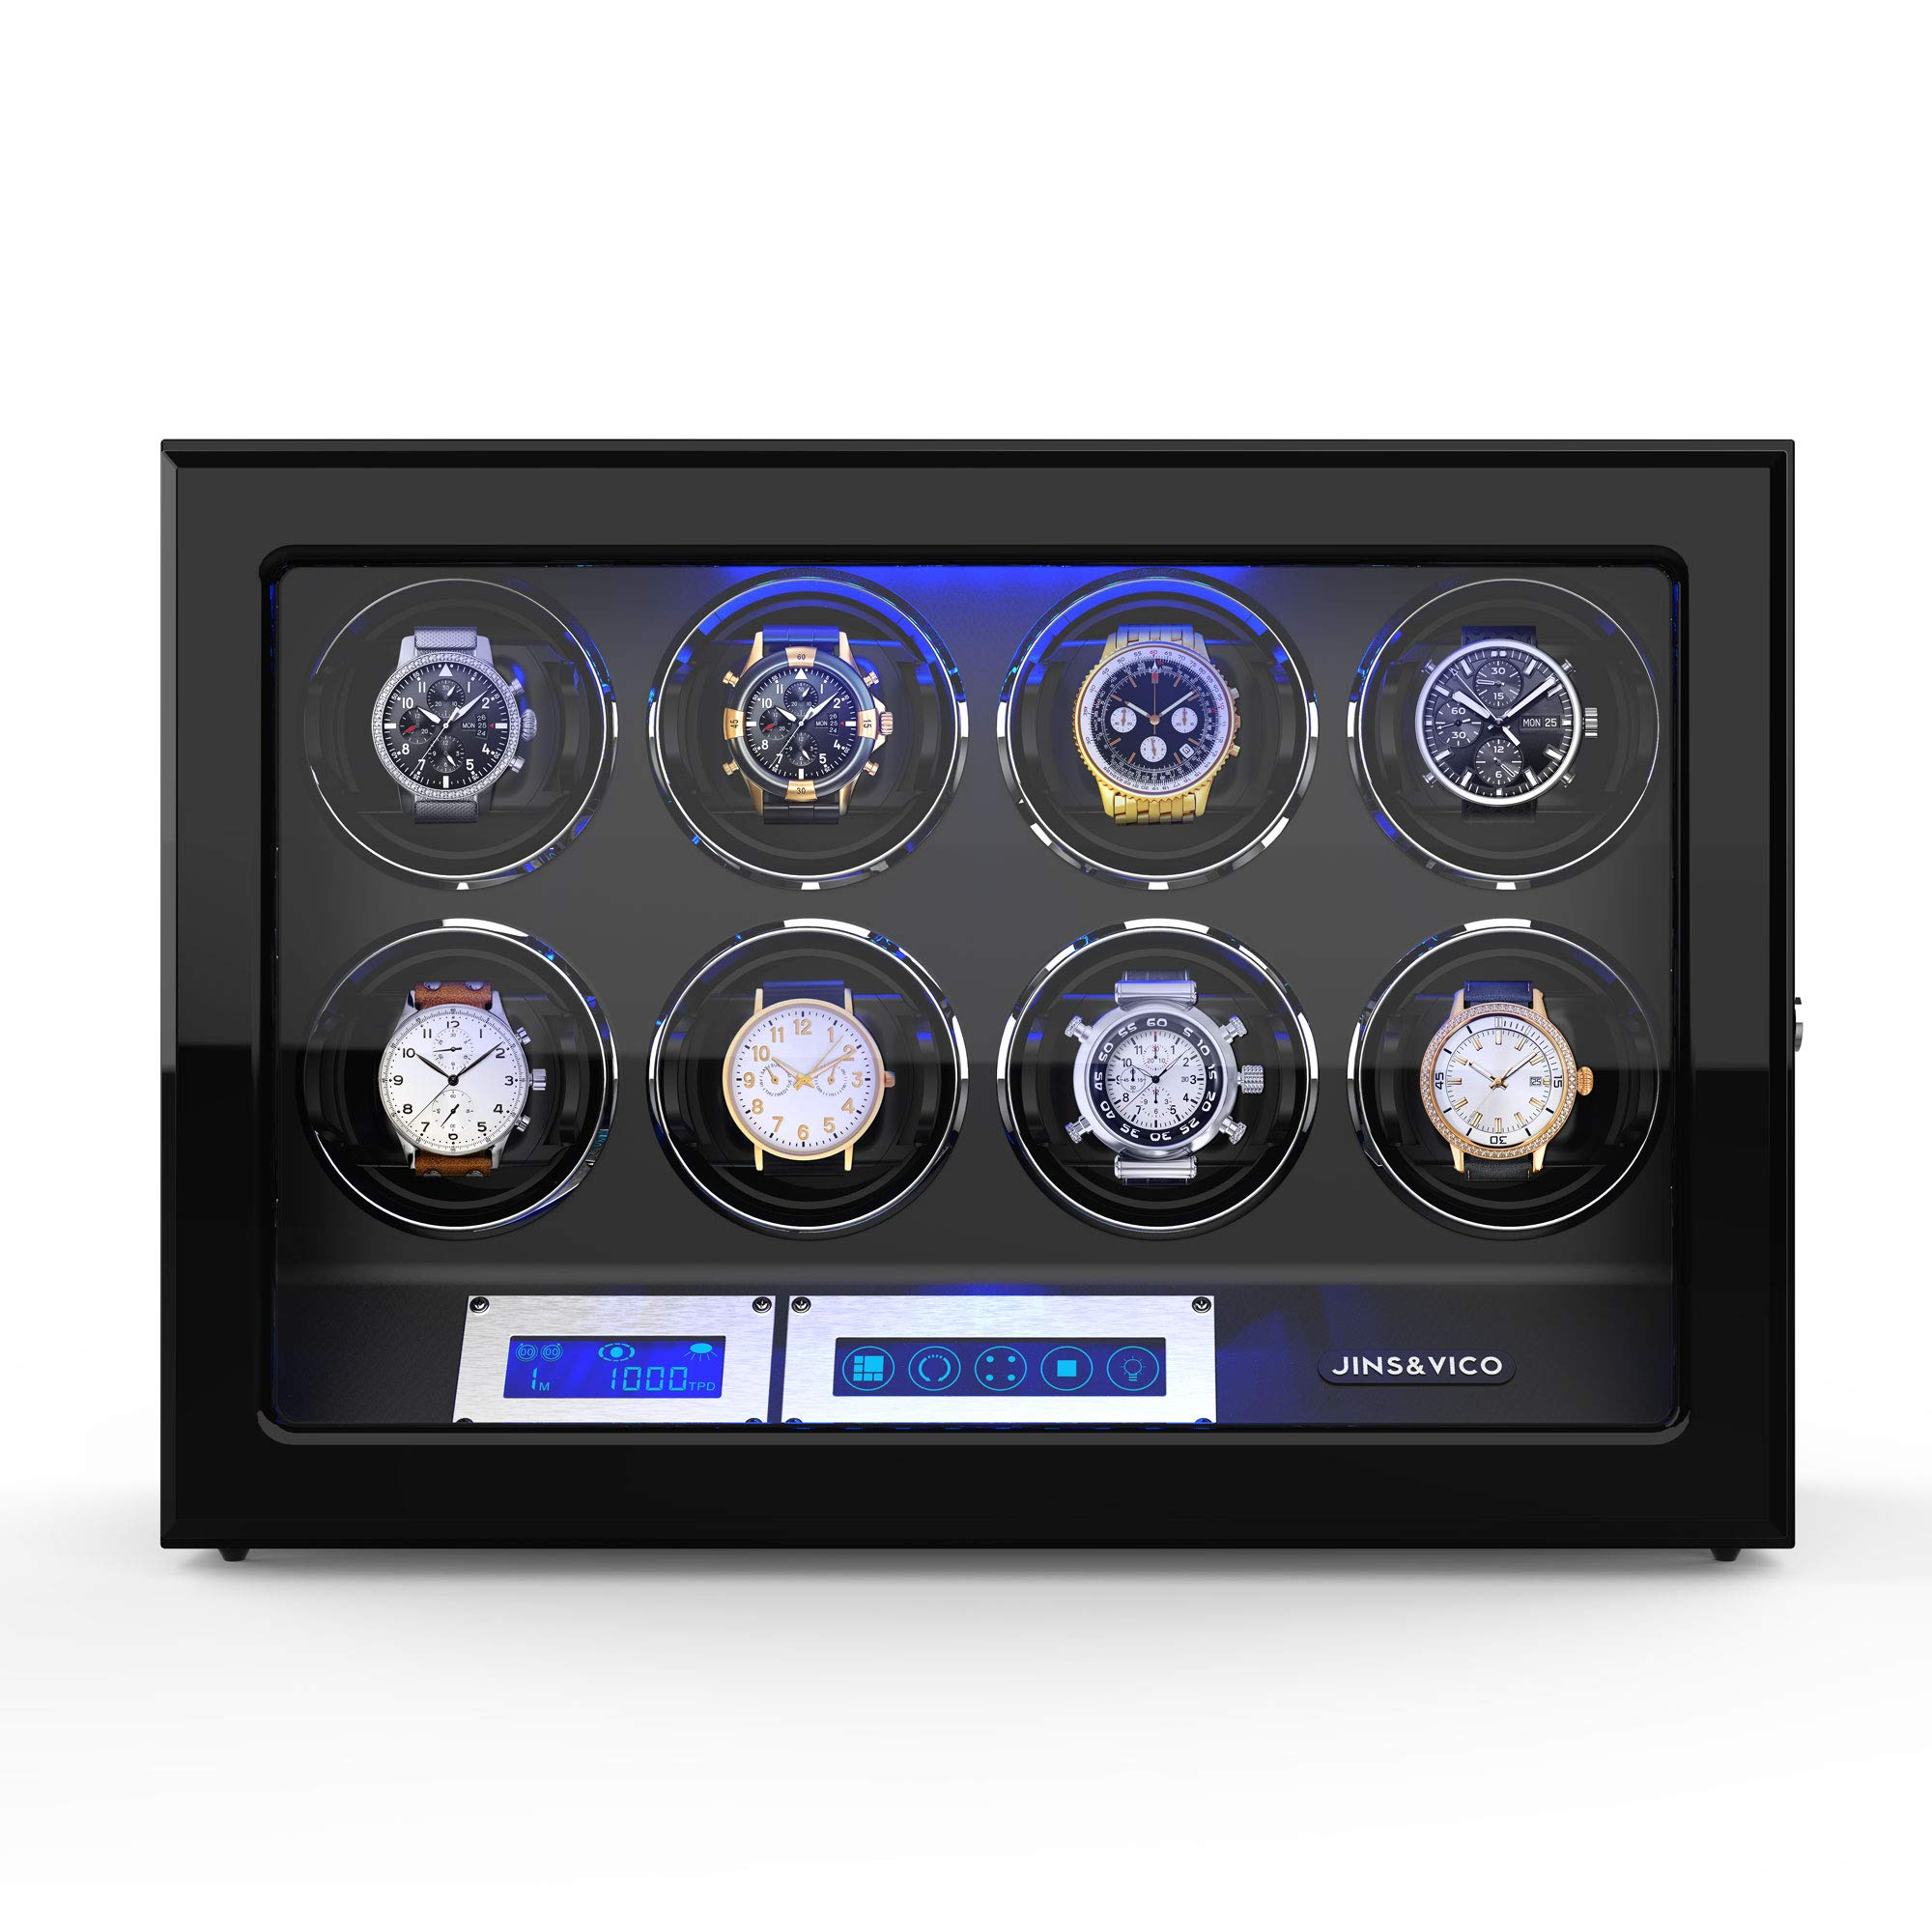 Watch Winder, [Newly Upgraded] Wooden Finish with Adjustable Watch Pillows, 8 Winding Spaces Watch Winders for Automatic Watches, Built-in Illumination by JINS&VICO